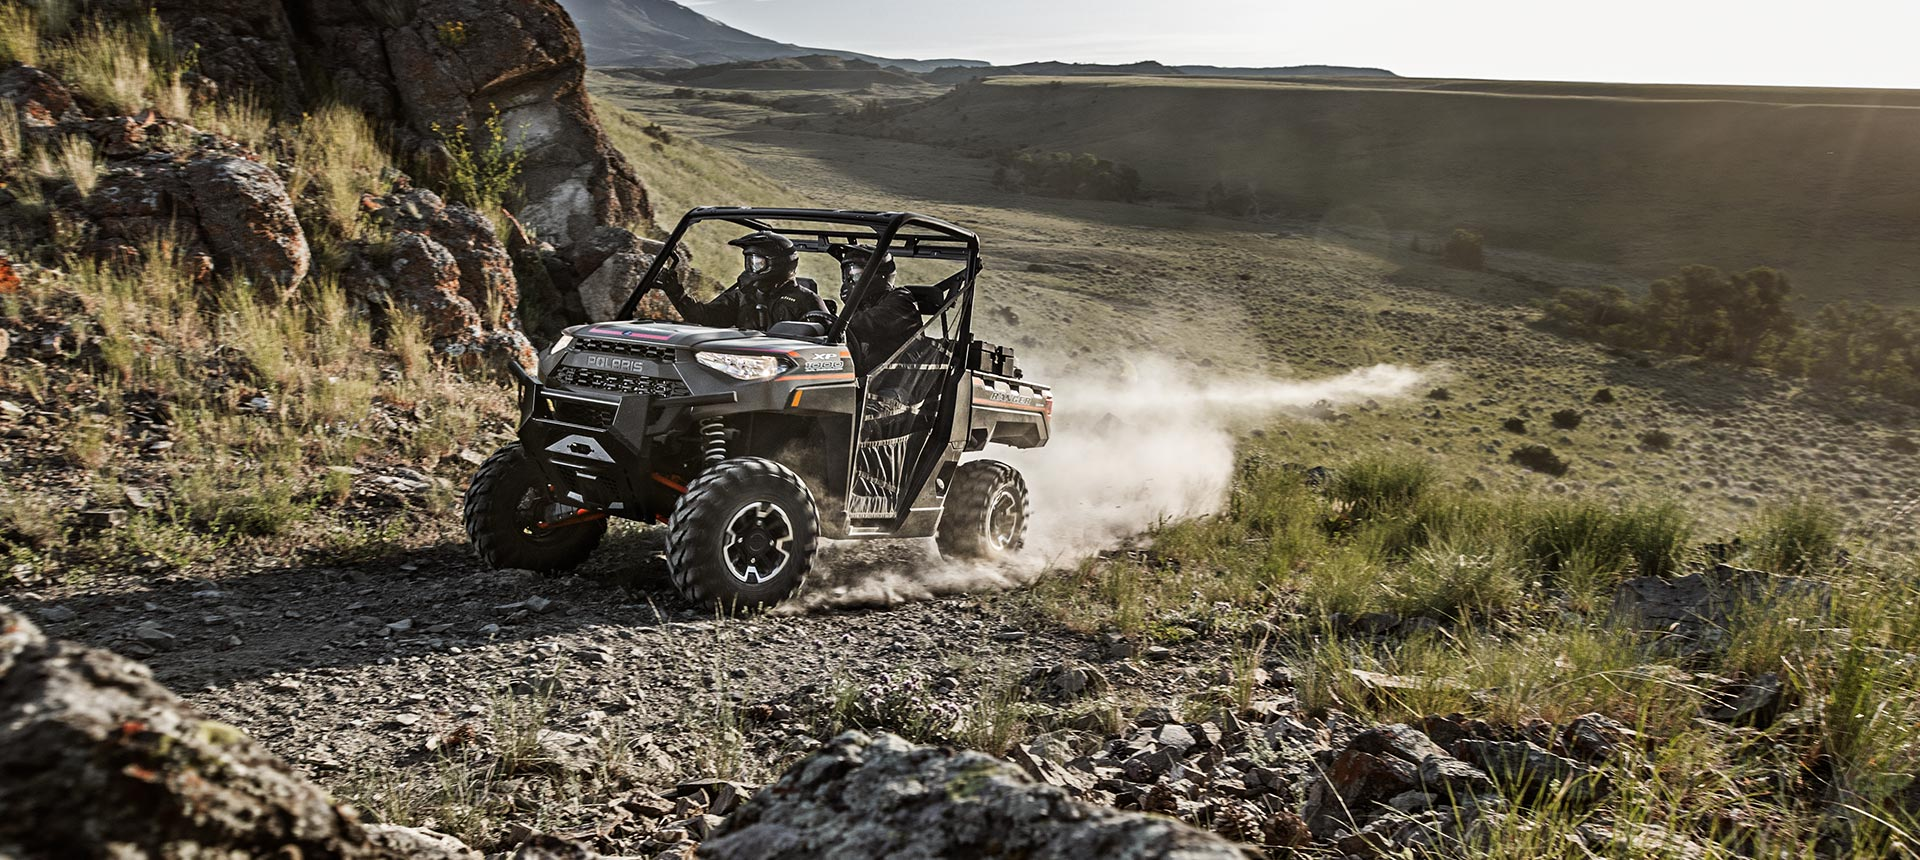 2019 Polaris Ranger XP 1000 EPS in Philadelphia, Pennsylvania - Photo 2